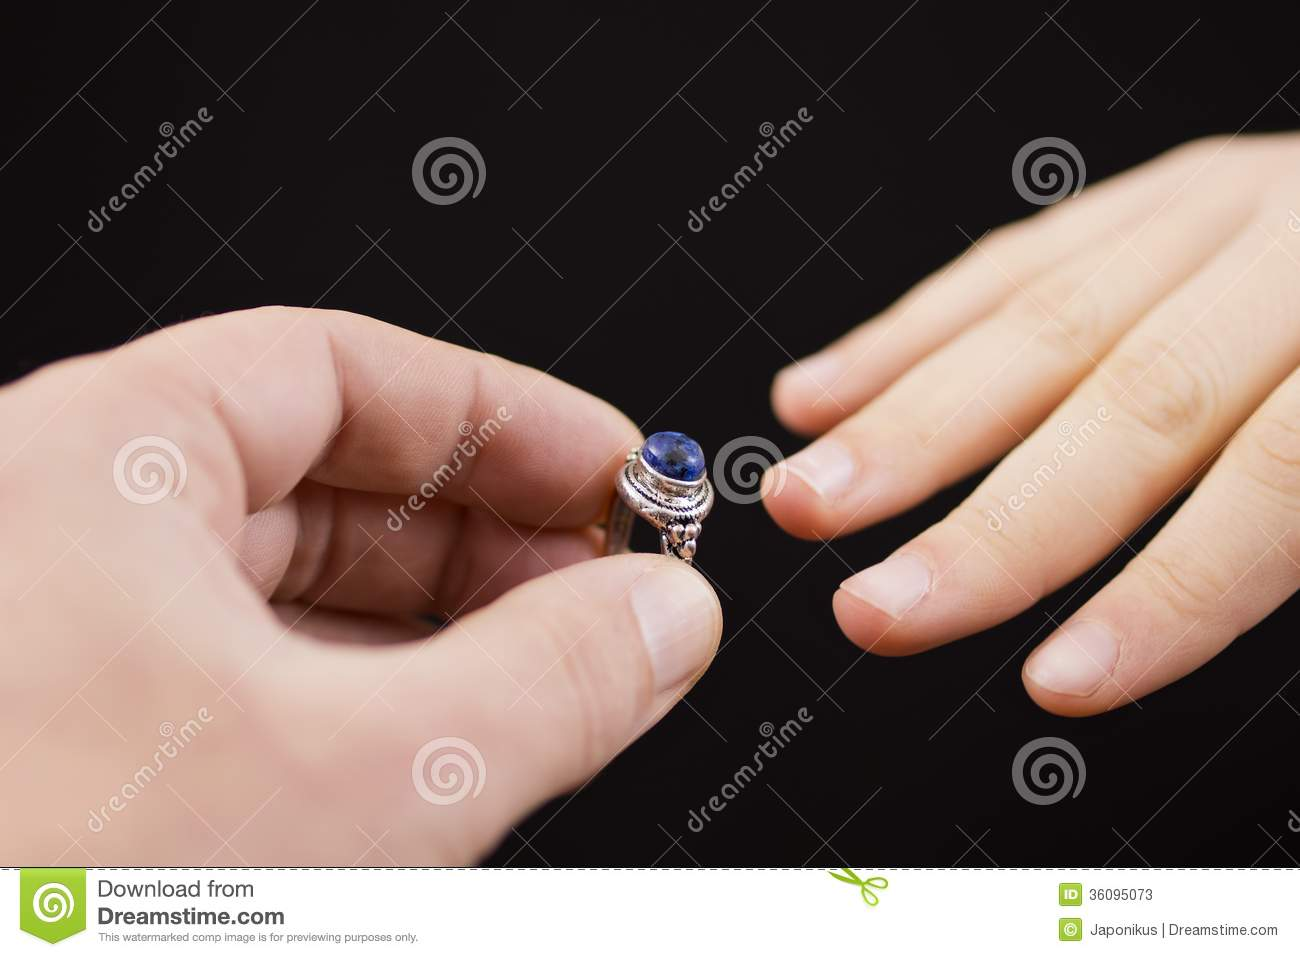 Putting A Ring On Girl\'s Hand Stock Image - Image: 36095073